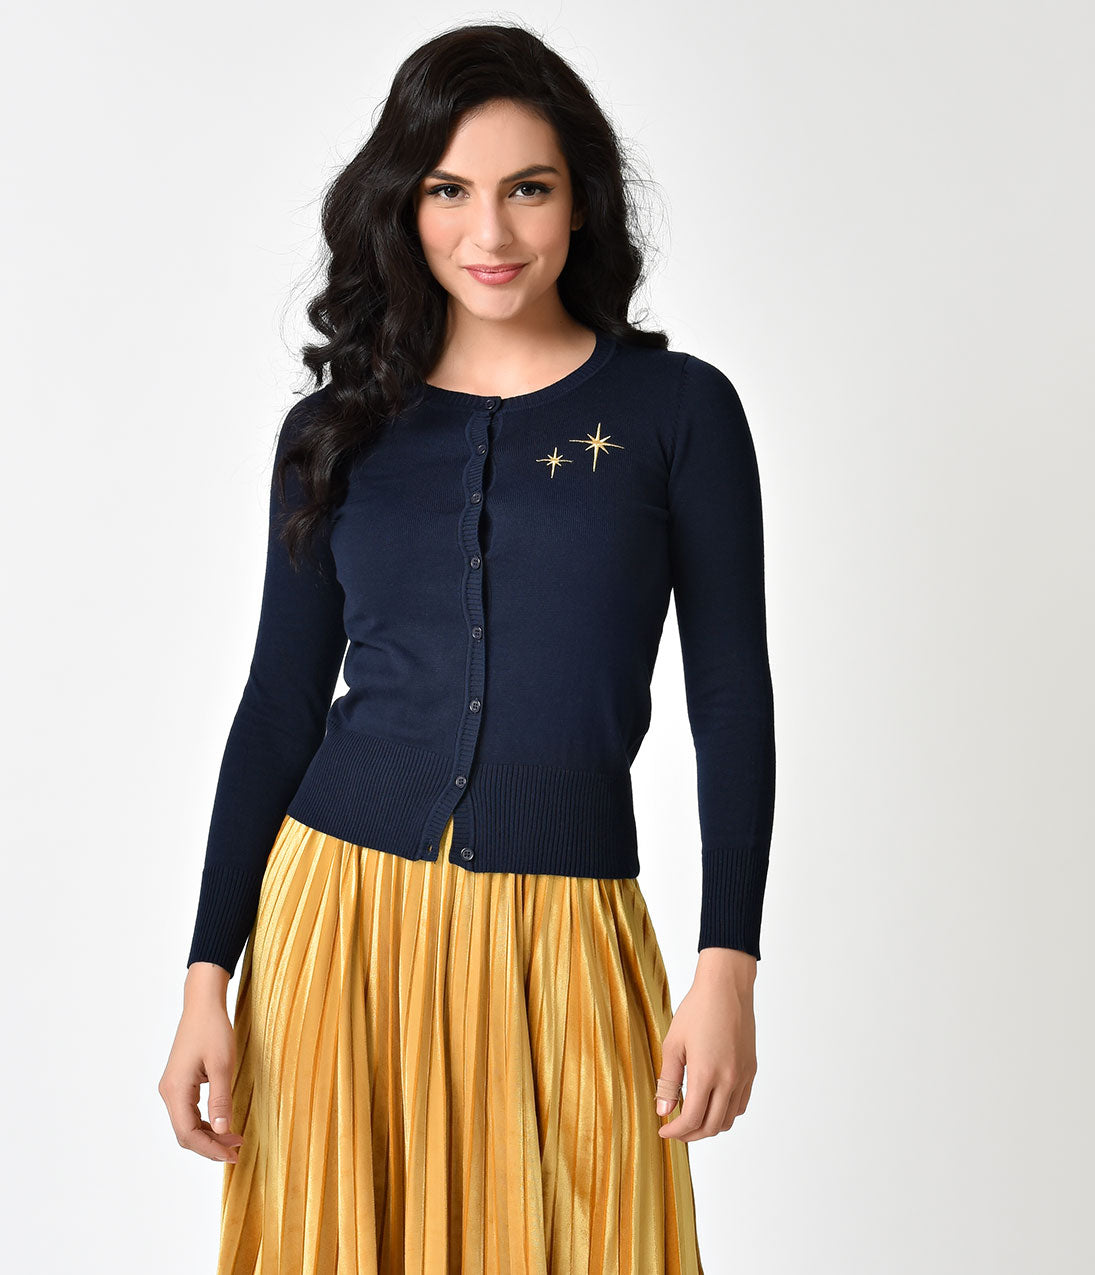 Vintage Sweaters: Cable Knit, Fair Isle Cardigans & Sweaters Whosits and Whatsits Navy Blue  Gold Embroidery Second Star Cardigan $38.00 AT vintagedancer.com